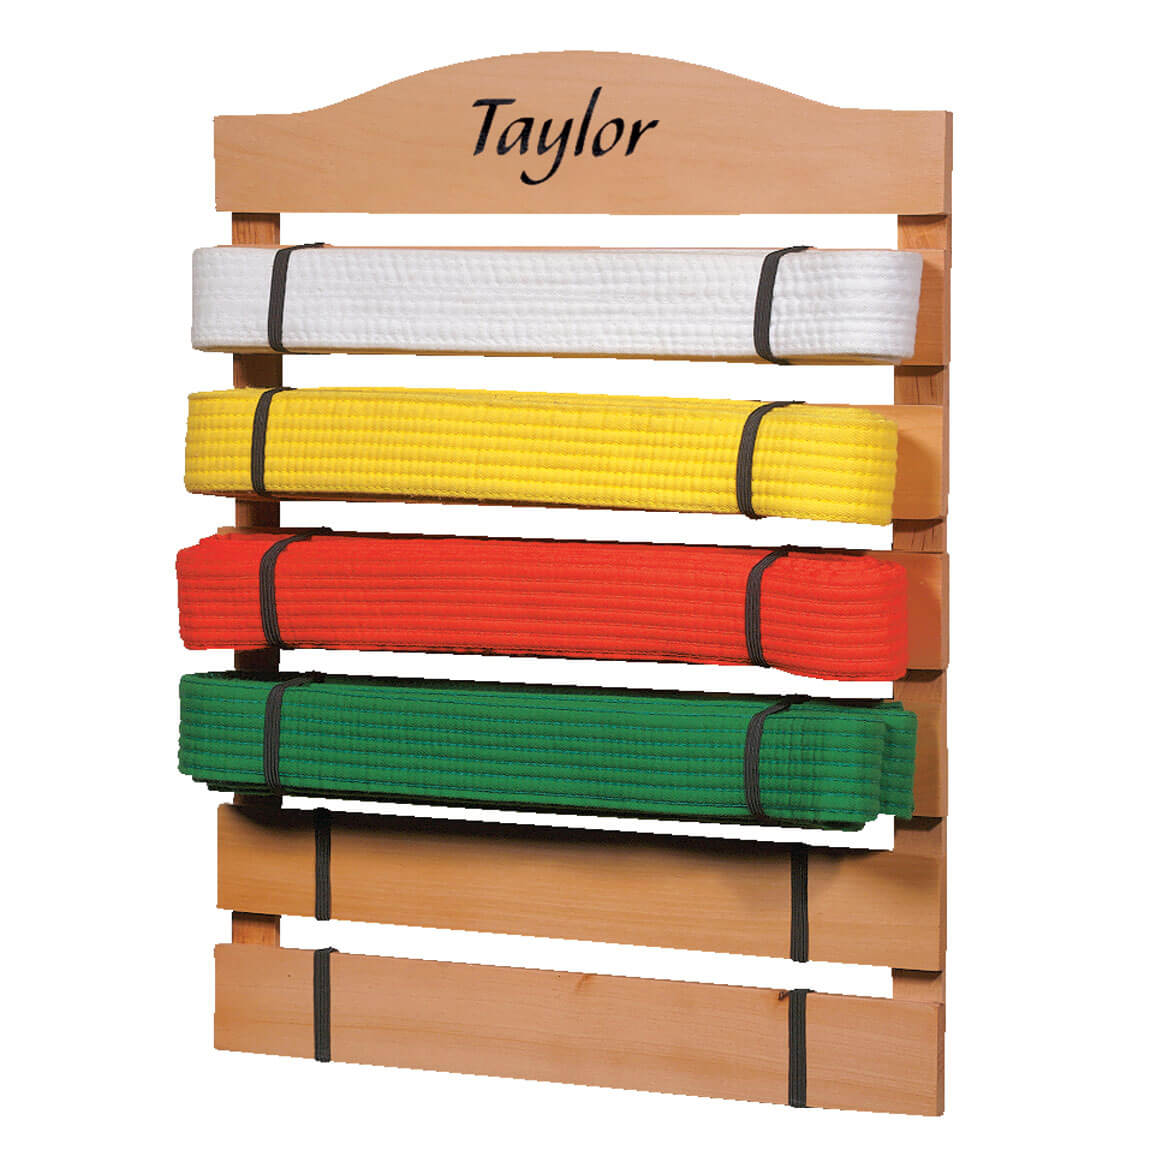 Personalized Karate Belt Rack - Karate Belt Display - Miles Kimball